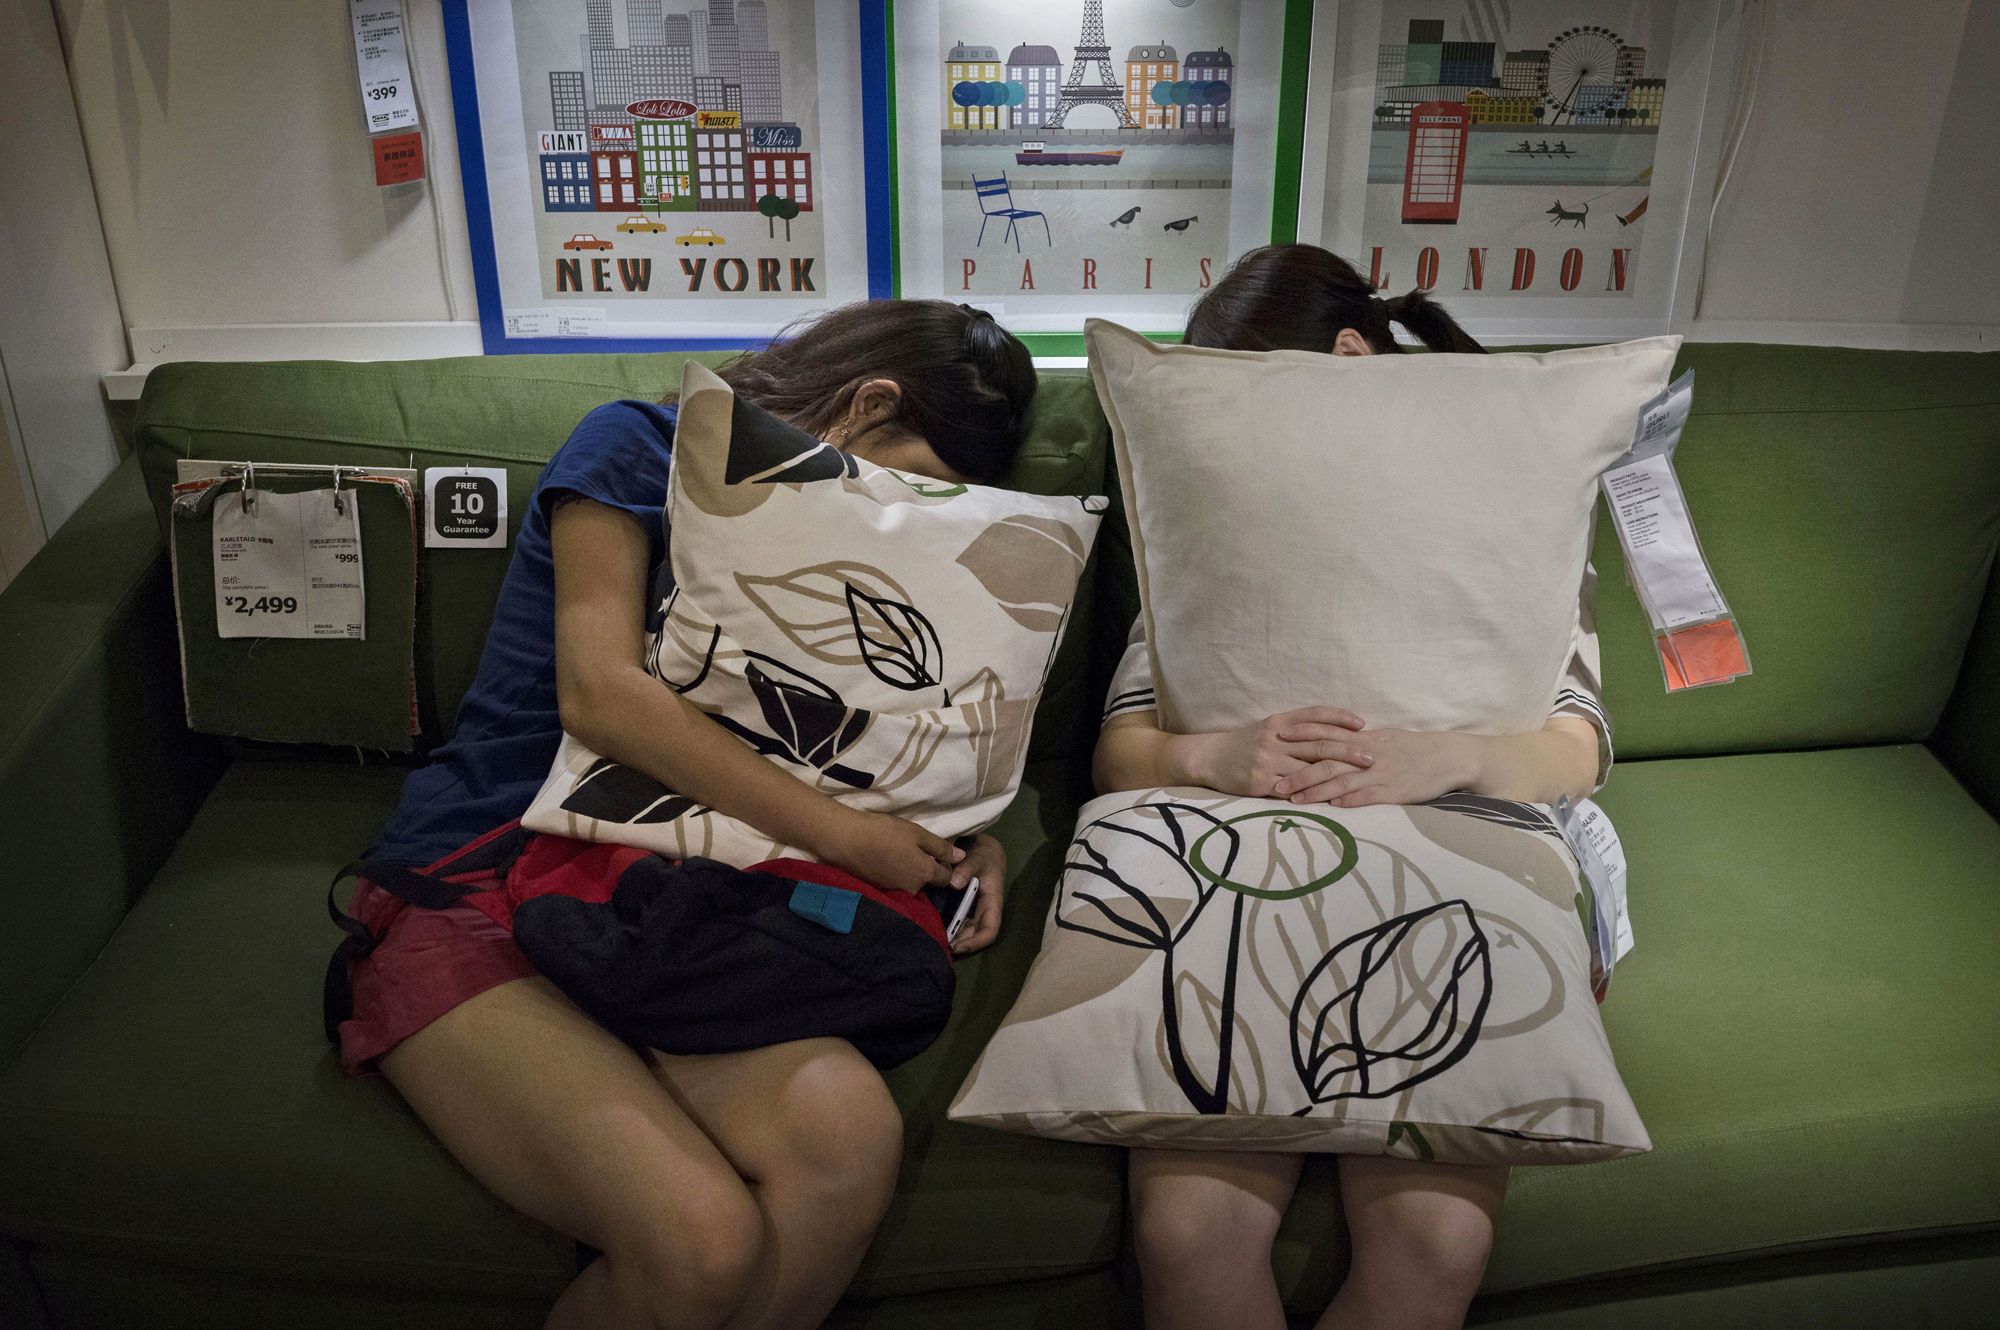 Shoppers clutch pillows as they sleep on a sofa in the showroom of the IKEA store on July 6, 2014 in Beijing.